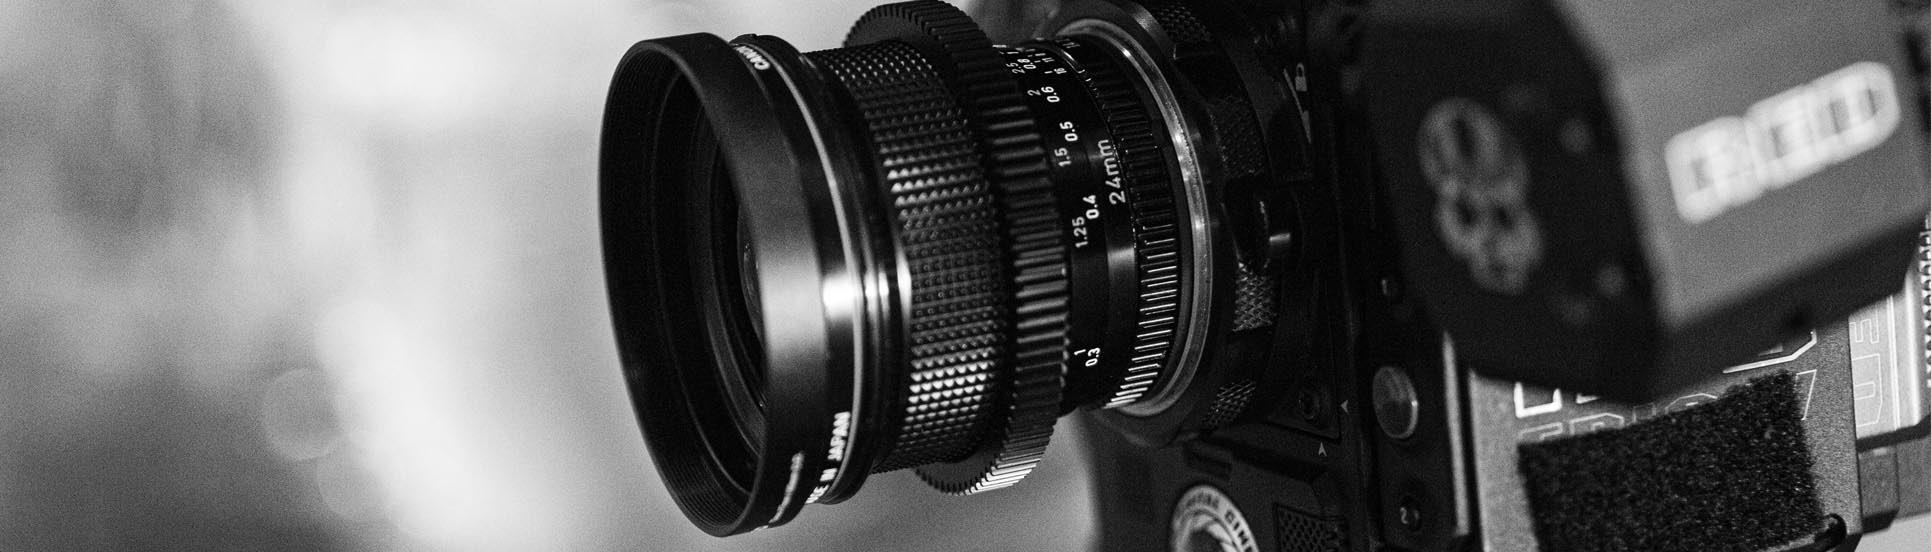 RED Camera vintage lens video marketing brand image online strategie verhaal storytelling